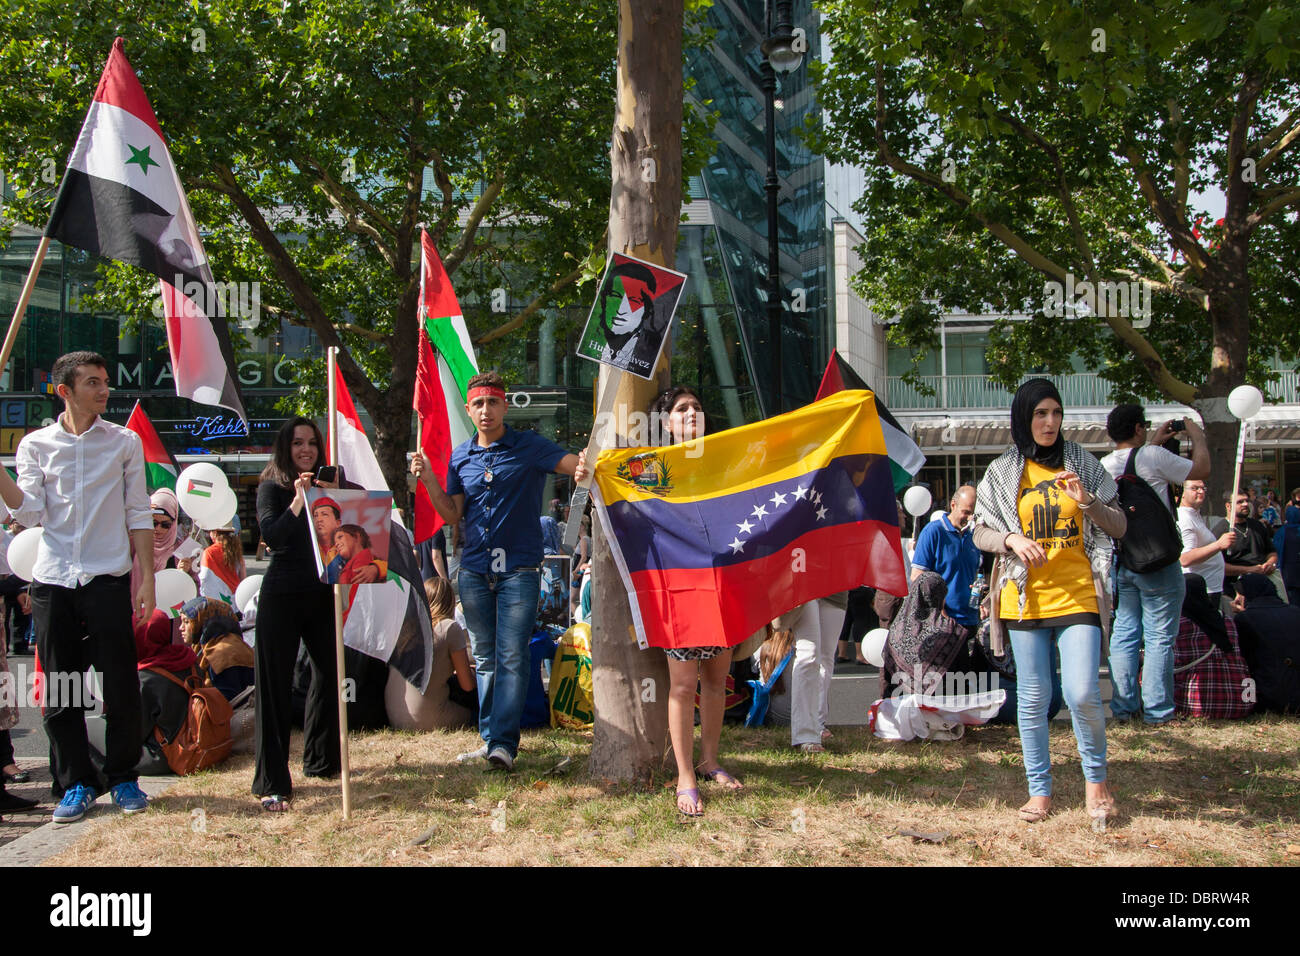 Al-Quds Day 2013 in Berlin. - Stock Image